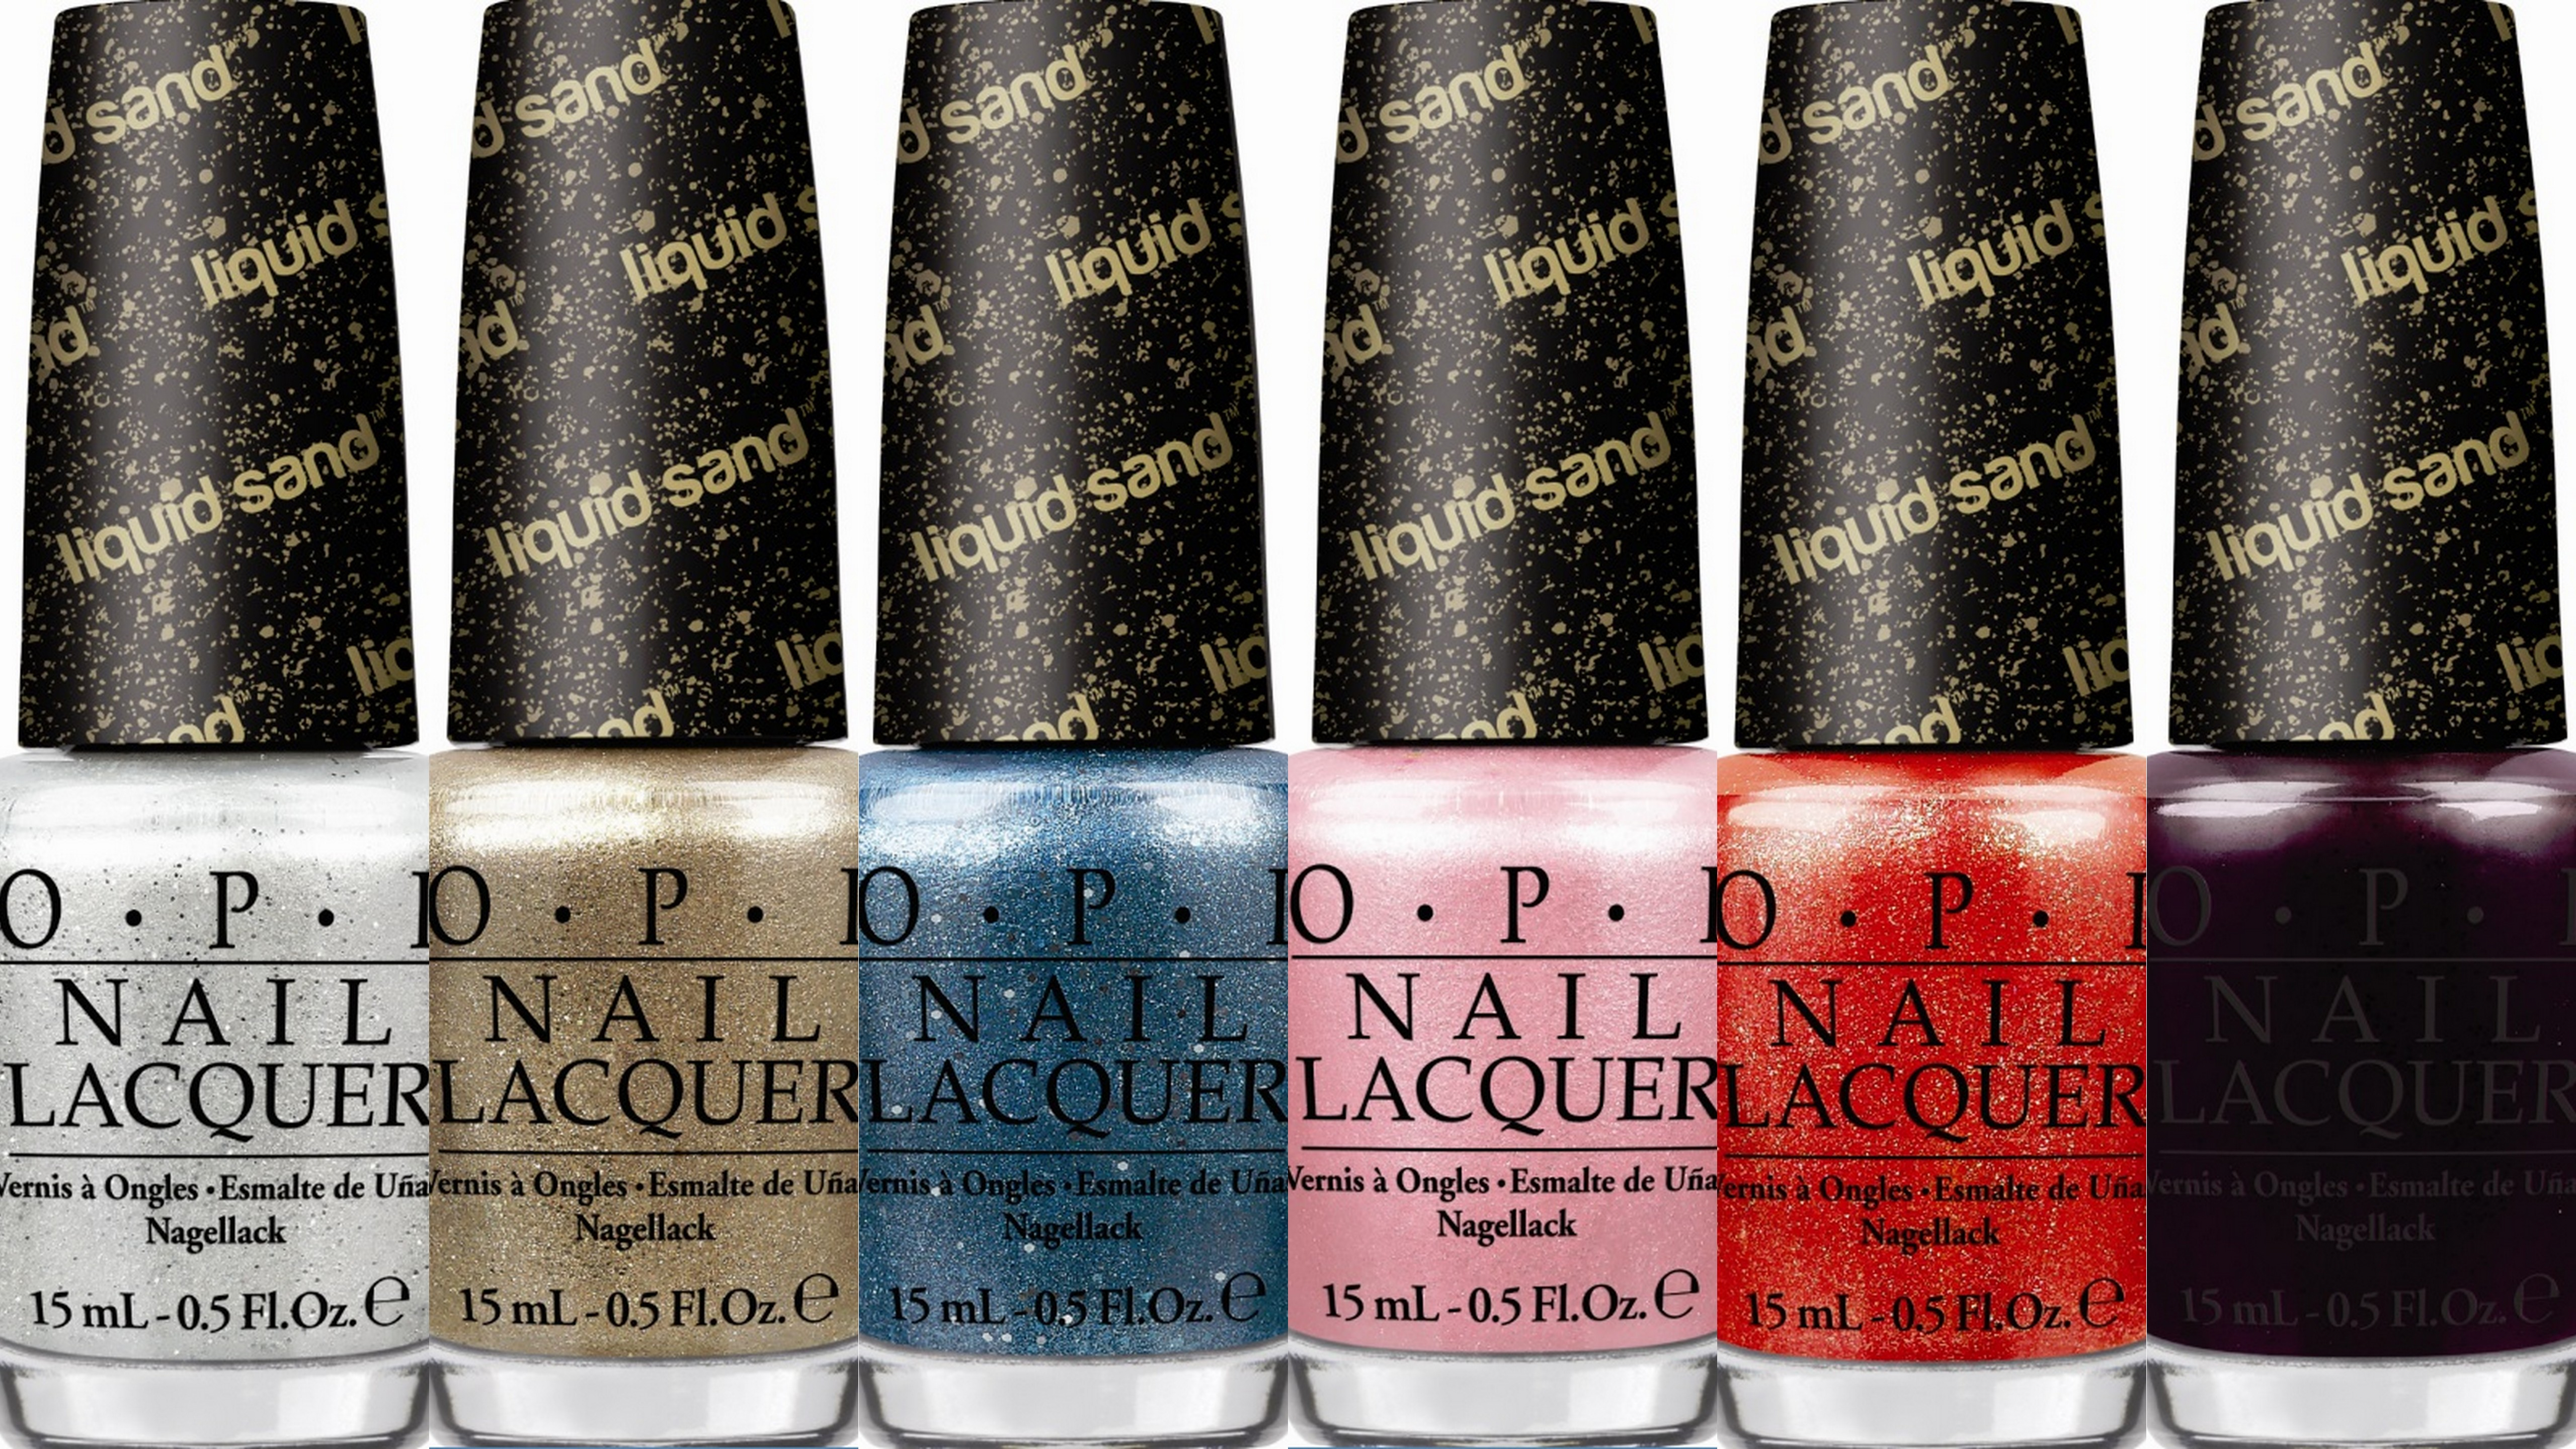 OPI Joins Bond 007 to Release Six New Revolutionary Liquid Sand ...